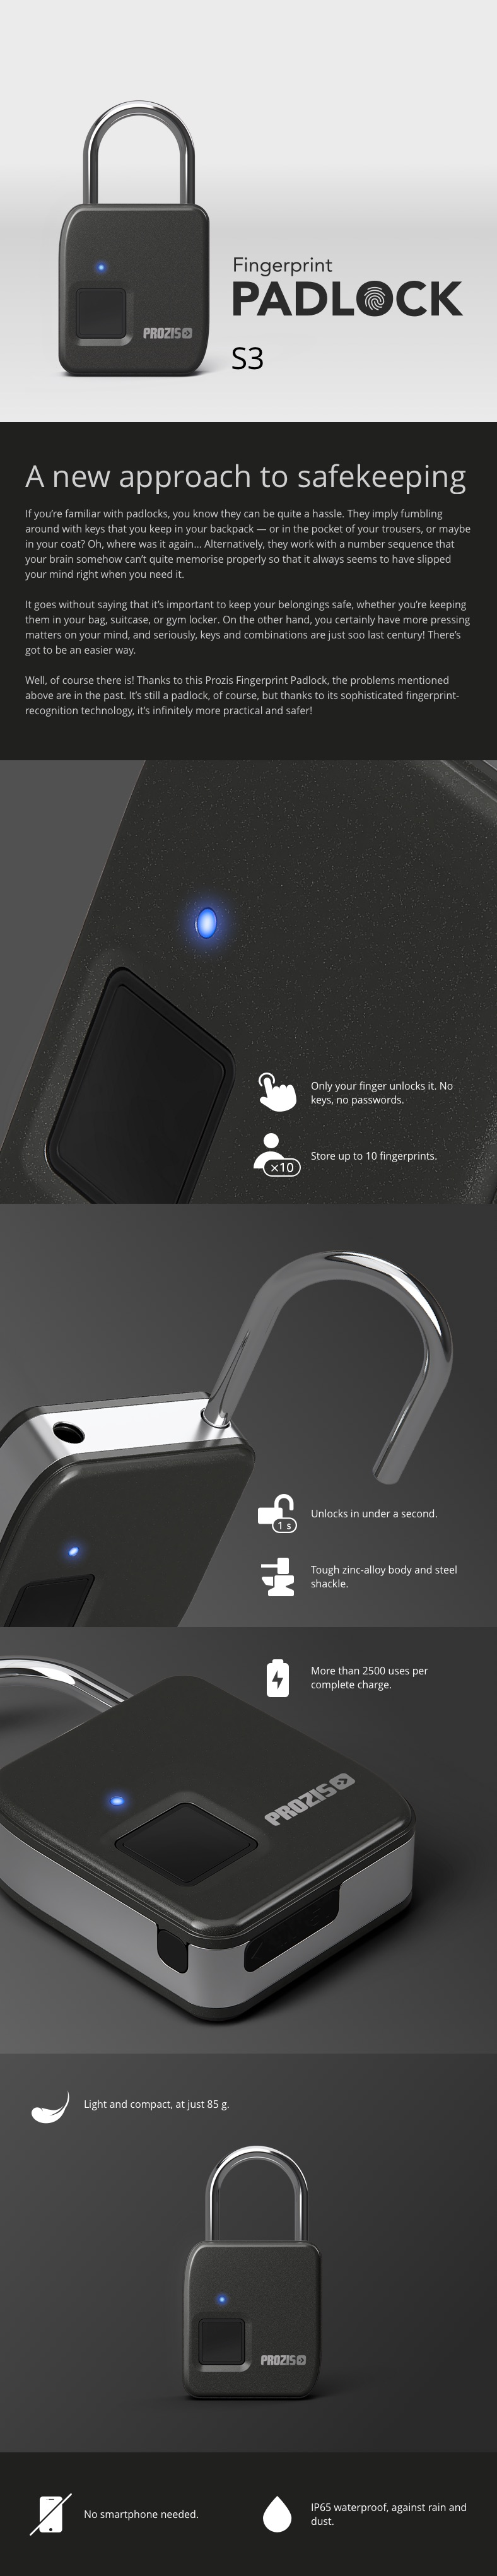 Fingerprint Padlock FL-S3 - description